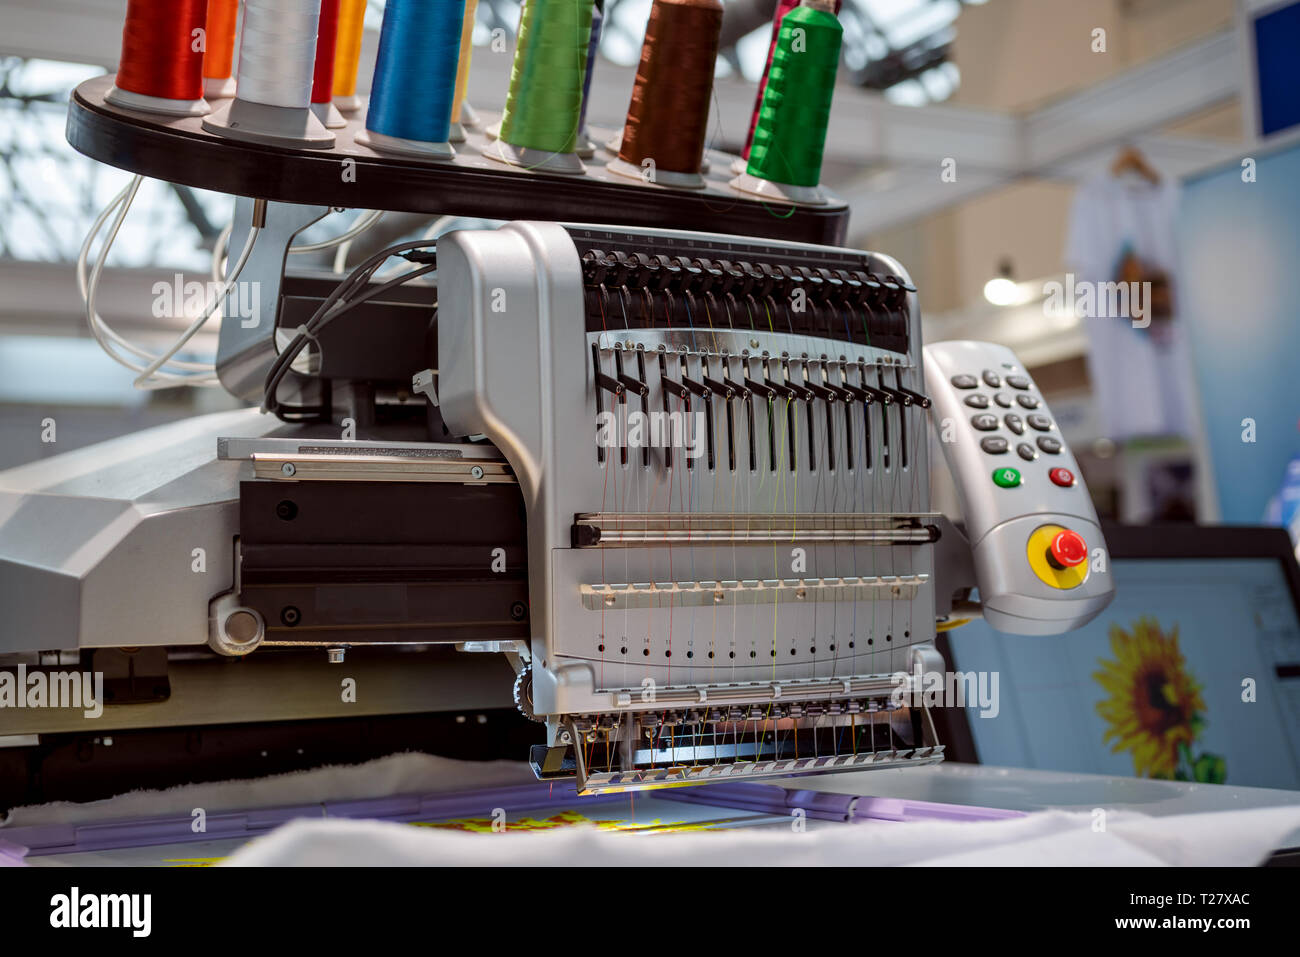 automatic industrial sewing machine for stitch by digital pattern modern textile industry T27XAC